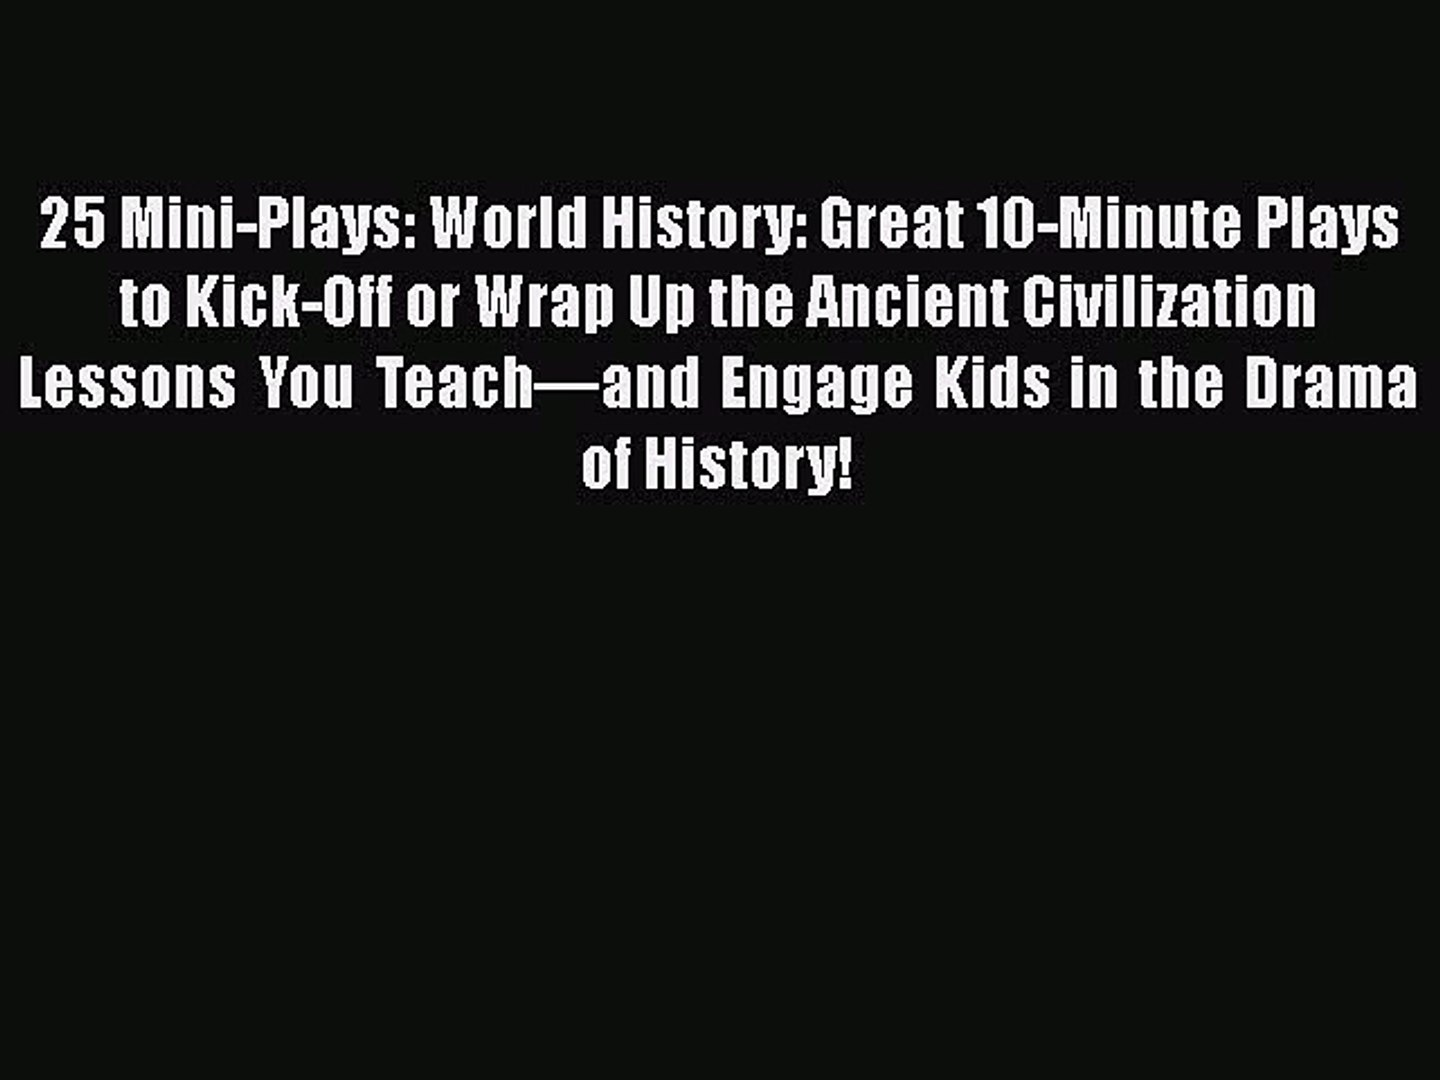 Read 25 Mini-Plays: World History: Great 10-Minute Plays to Kick-Off or  Wrap Up the Ancient